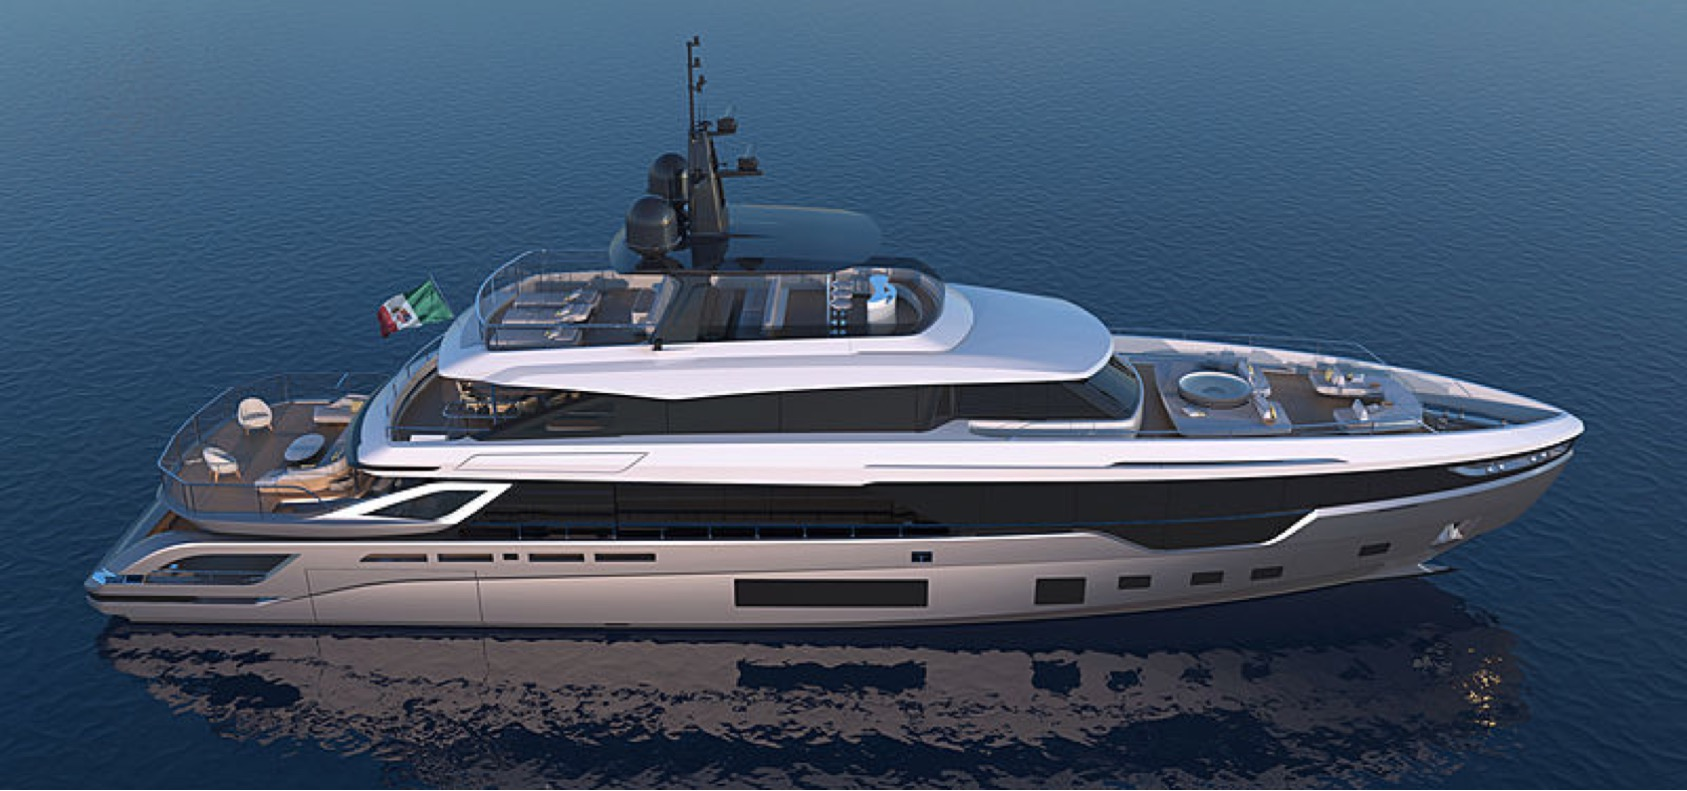 The Azimut Grande Trideck: Azimut Yacht's First Trideck and the Largest Megayacht They Have Ever Built